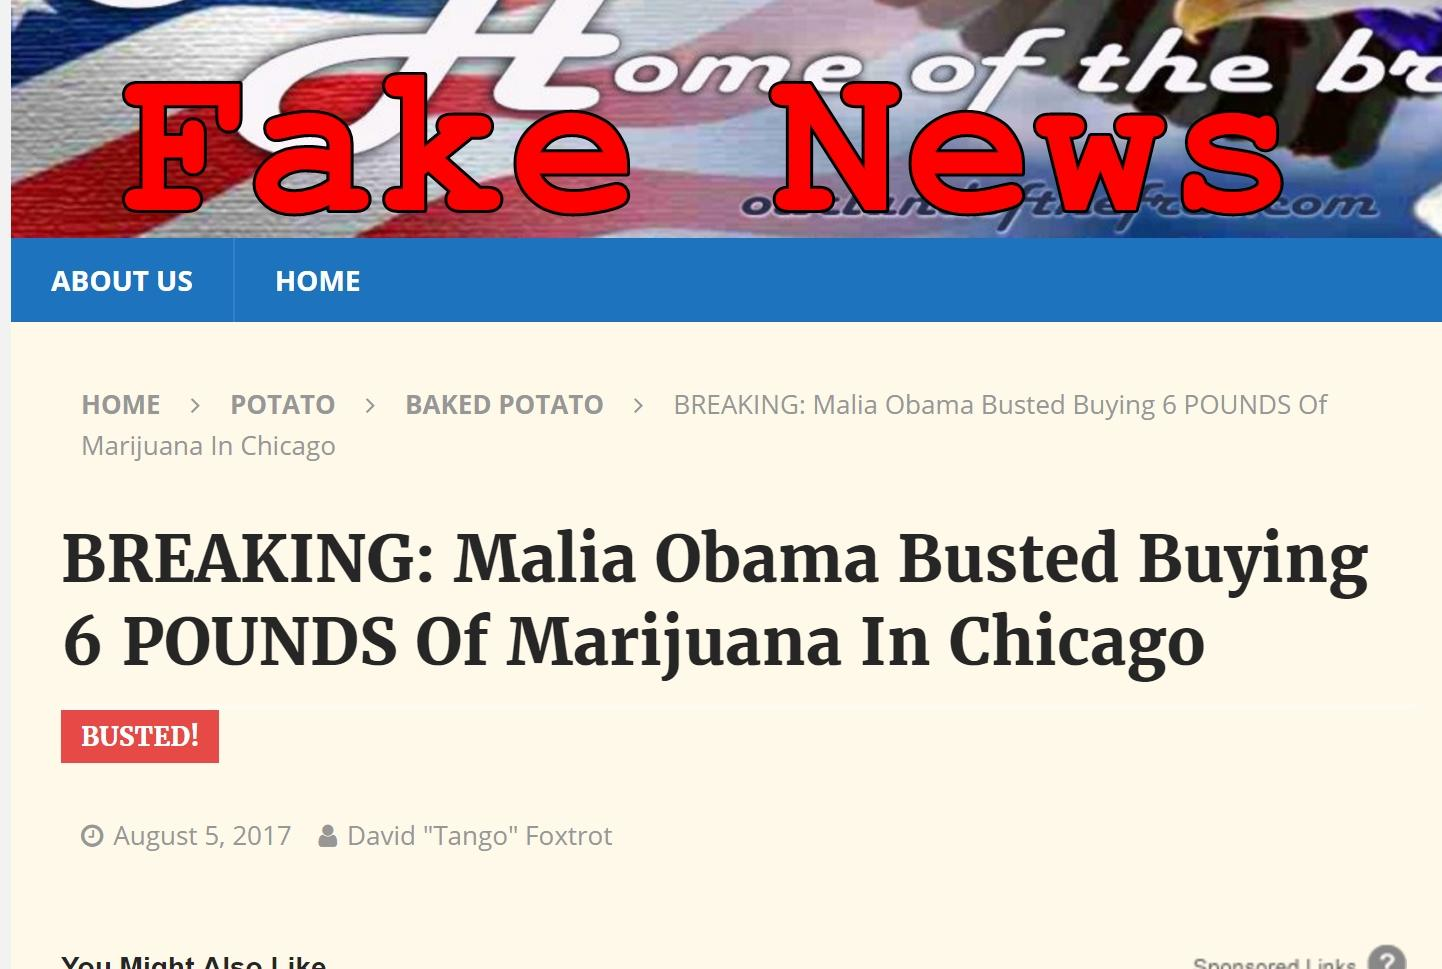 Fake News: Malia Obama NOT Busted Buying 6 Pounds Of Marijuana In Chicago